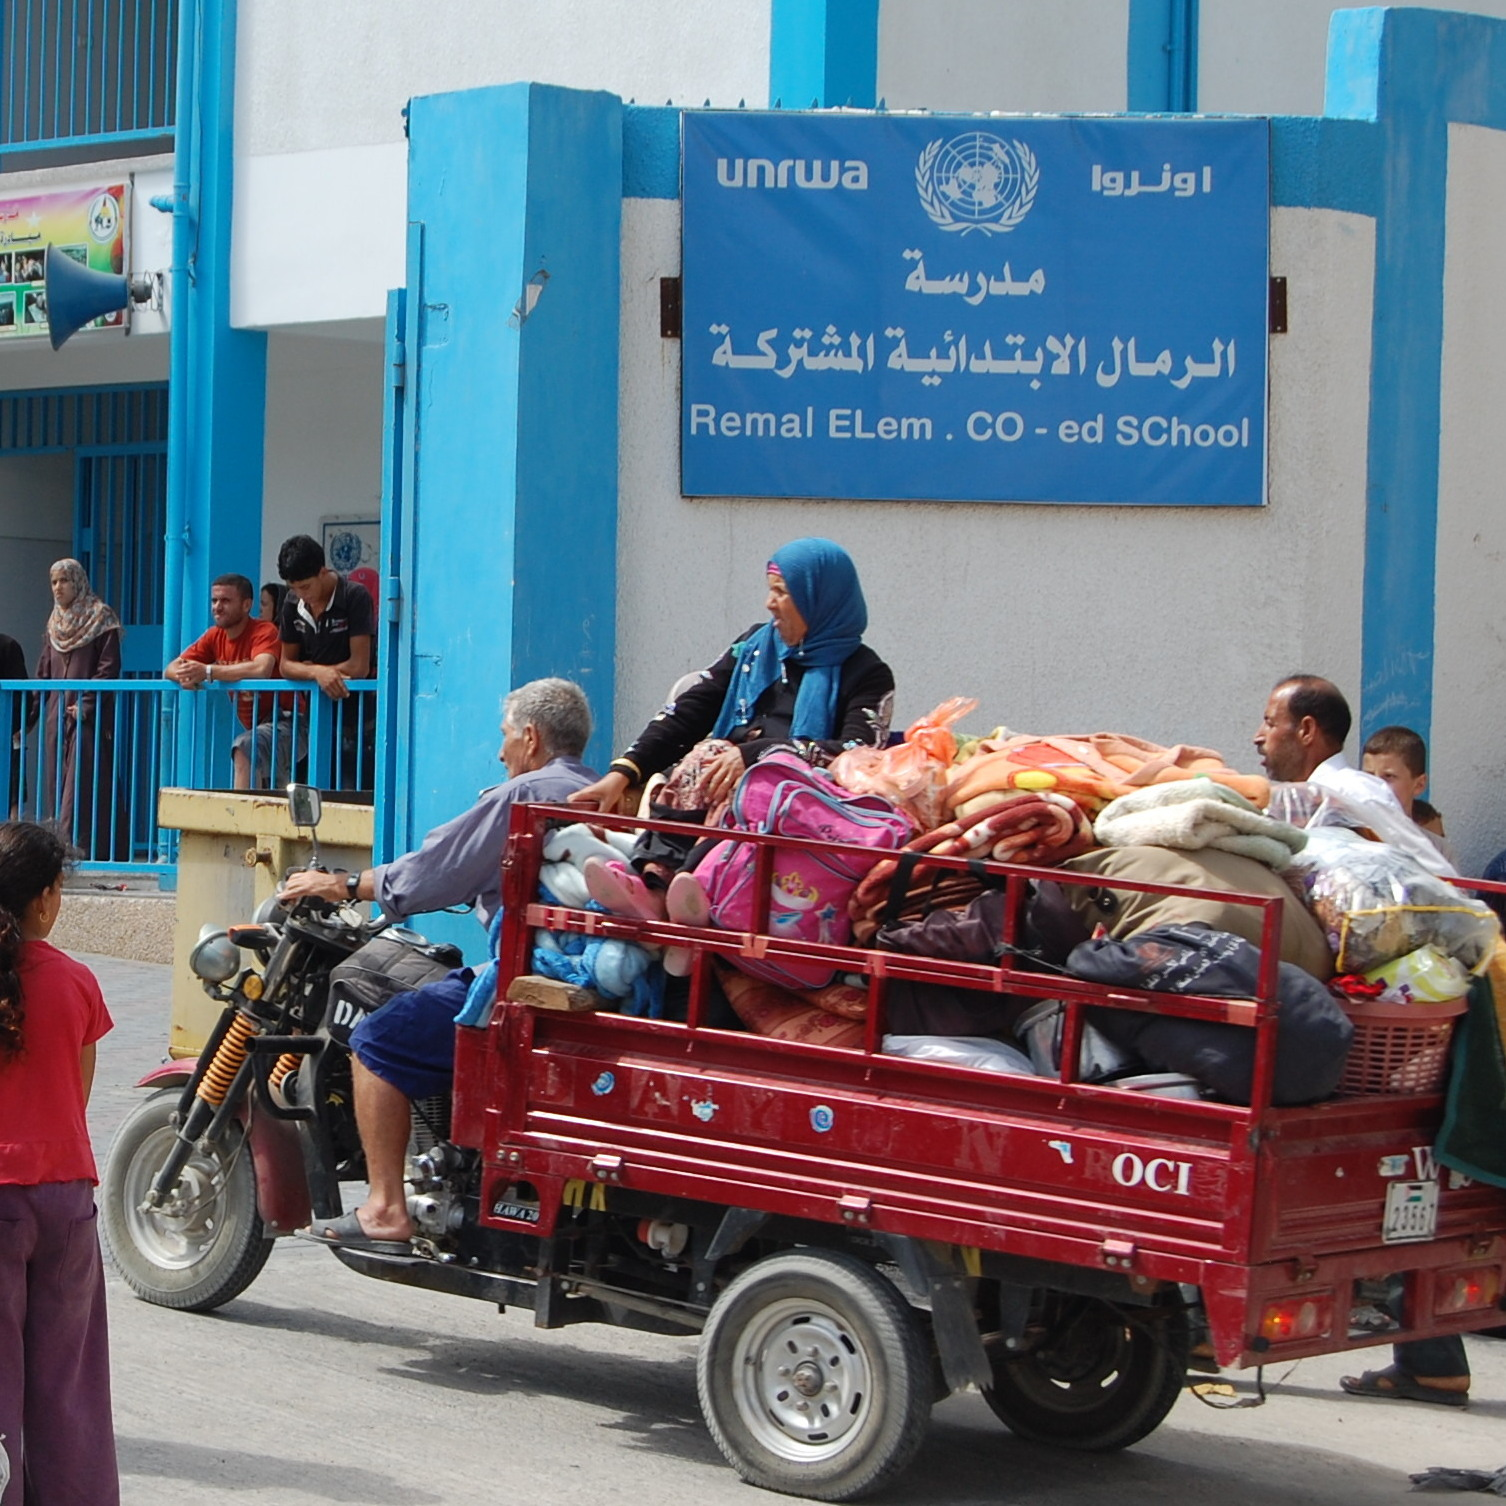 Palestinian families arrive at al-Remal Elementary School, which is run by the U.N. Relief and Works Agency, or UNRWA. The director of UNRWA operations in Gaza says the U.N. expects 50,000 evacuees to seek shelter at schools like this one.